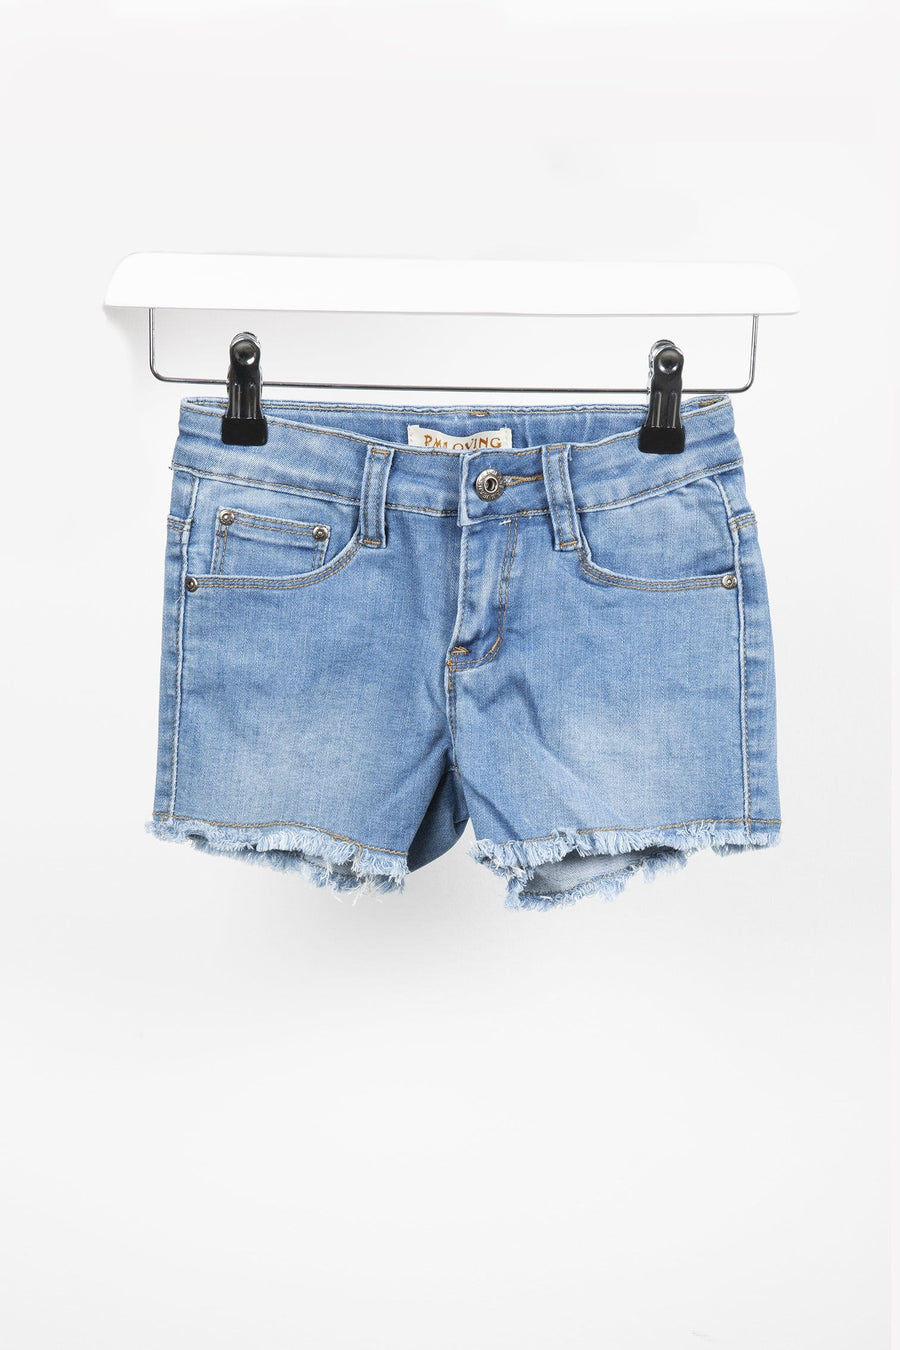 Rubie Denim Distressed Shorts Blue From Little Attitude